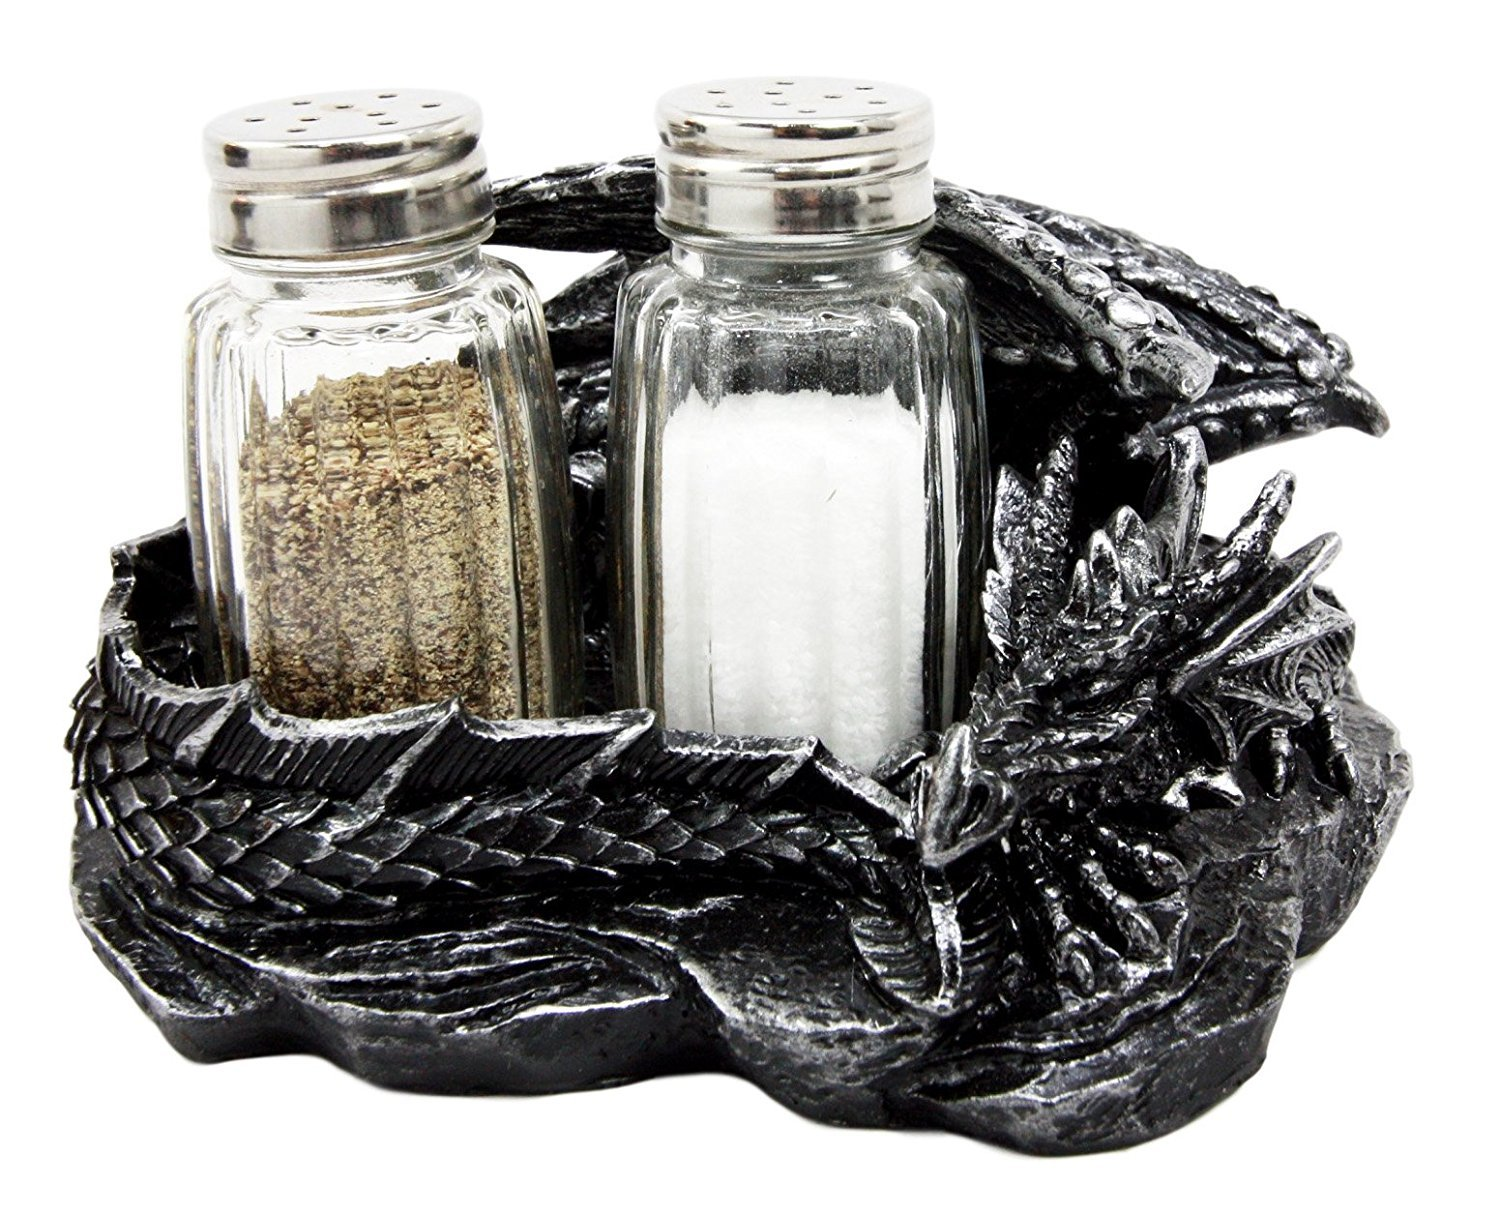 Mythical Sleeping Dragon Glass Salt and Pepper Shaker Set with Decorative Holder Display Stand Figurine for Medieval Kitchen Decor Sculptures & Gothic Dining Room Table Centerpieces As Fantasy Home Accent Gifts